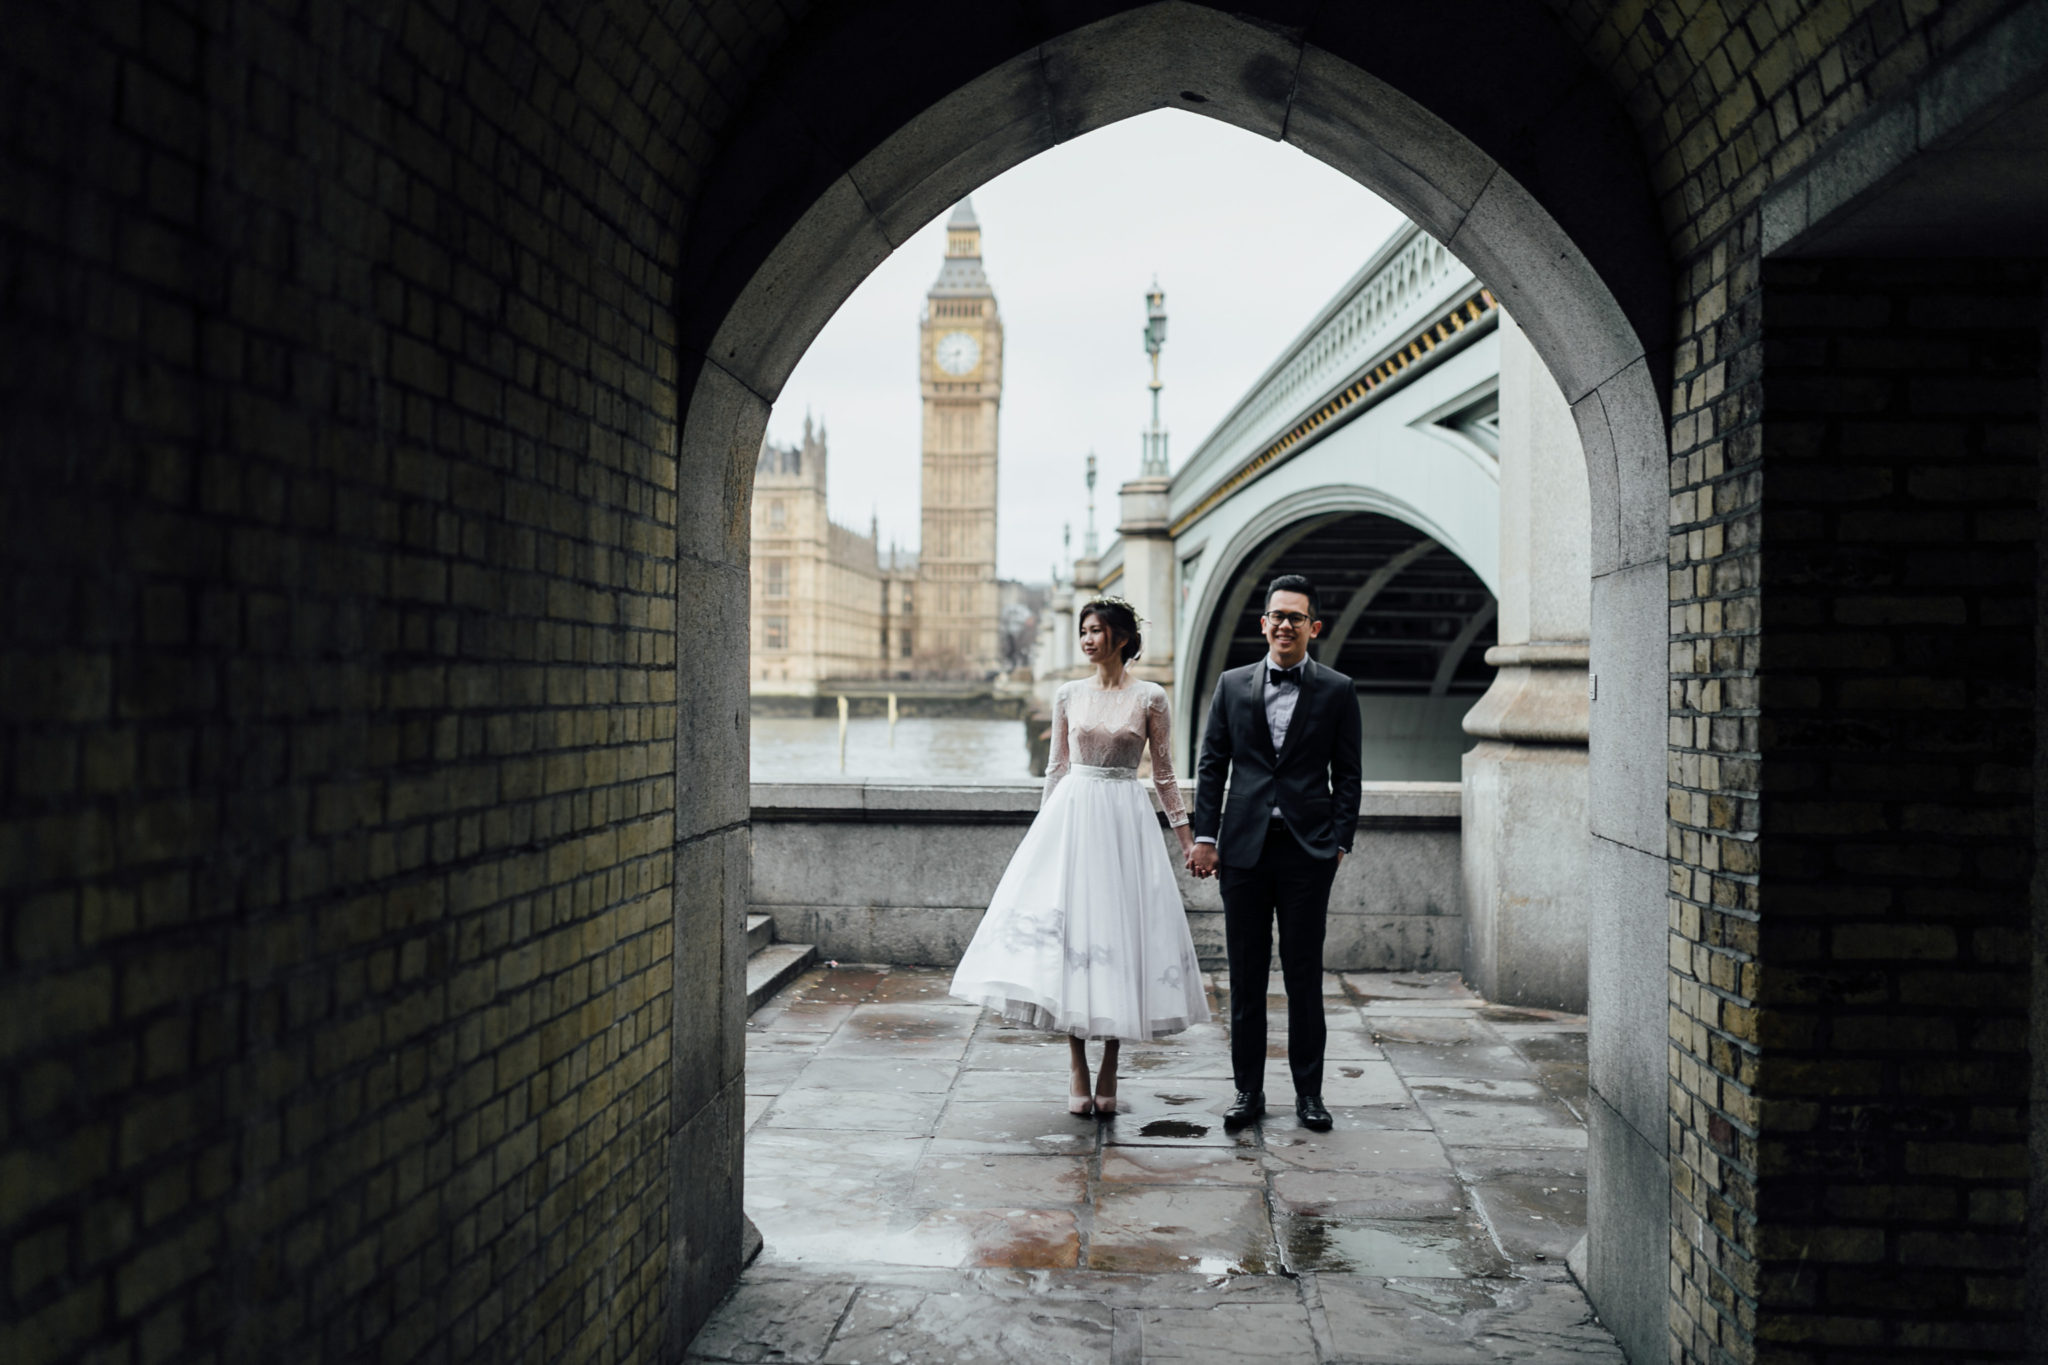 London couples shoot at wesminster